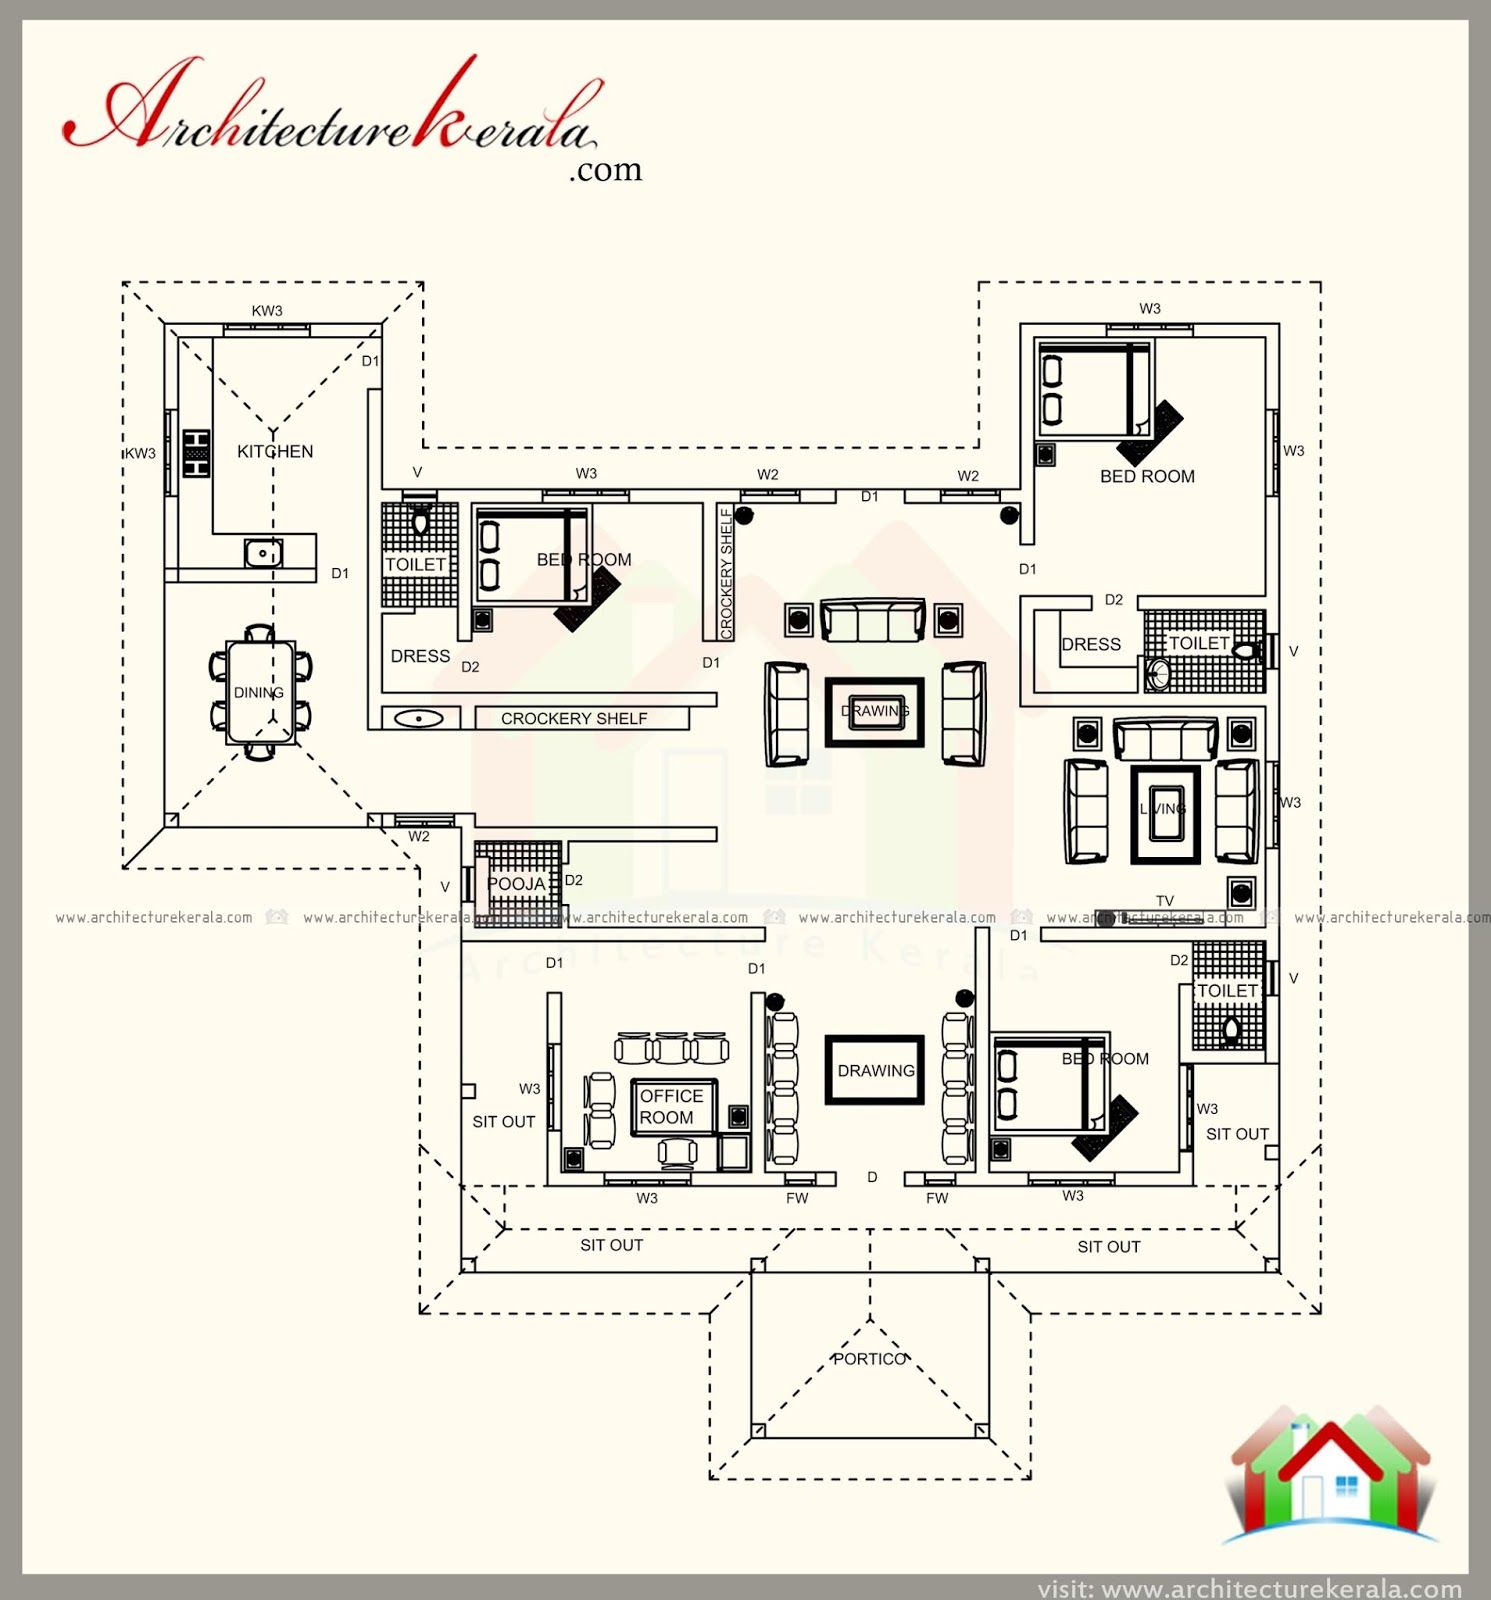 Kerala Style House Plan With Tree Bedrooms With Attached Bath One Office Room Separate Drawing Din Traditional House Plan House Plans Kerala House Design